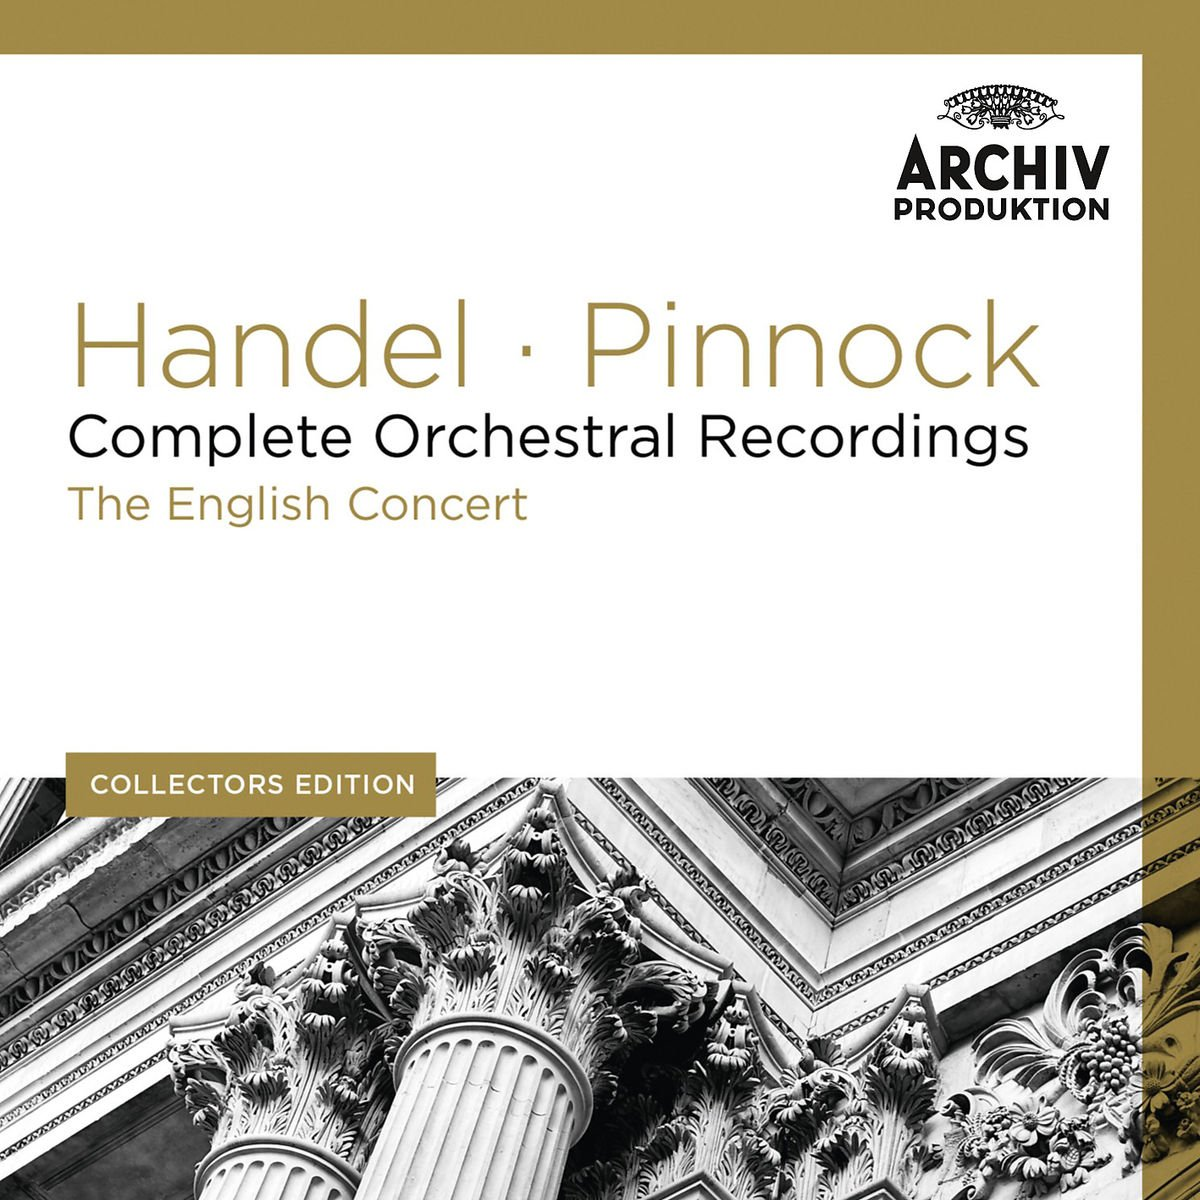 Collectors Edition: Handel: Complete Orchestral Recordings [11 CD] by Deutsche Grammophon